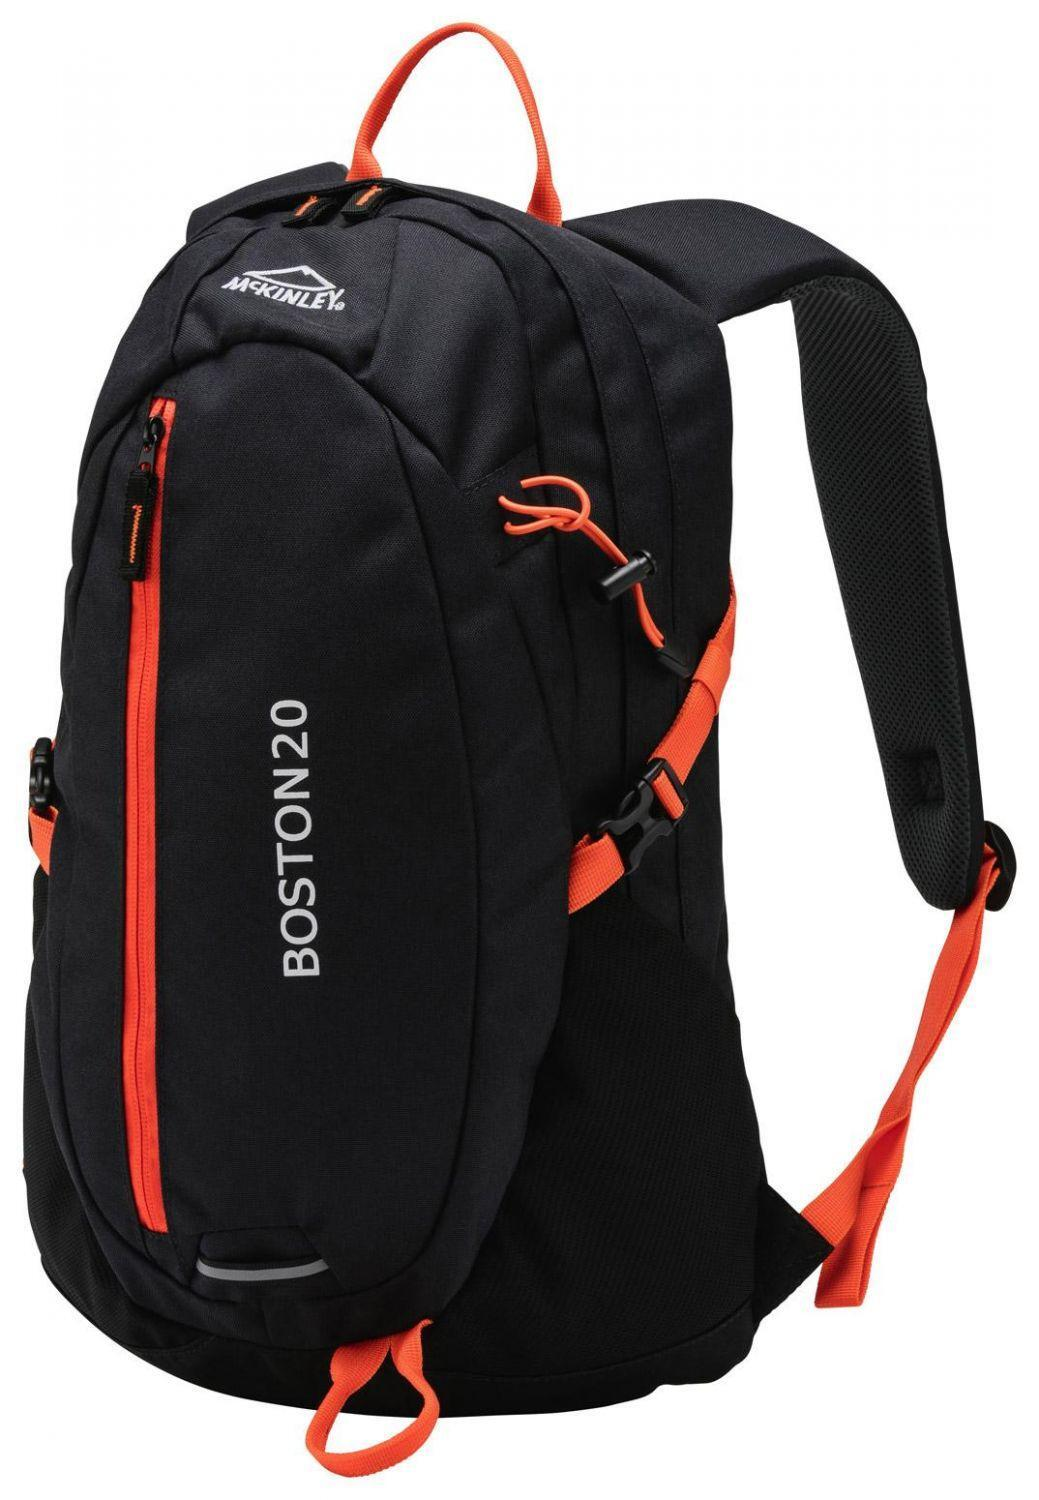 mckinley-boston-20-wanderrucksack-farbe-900-anthrazit-orange-